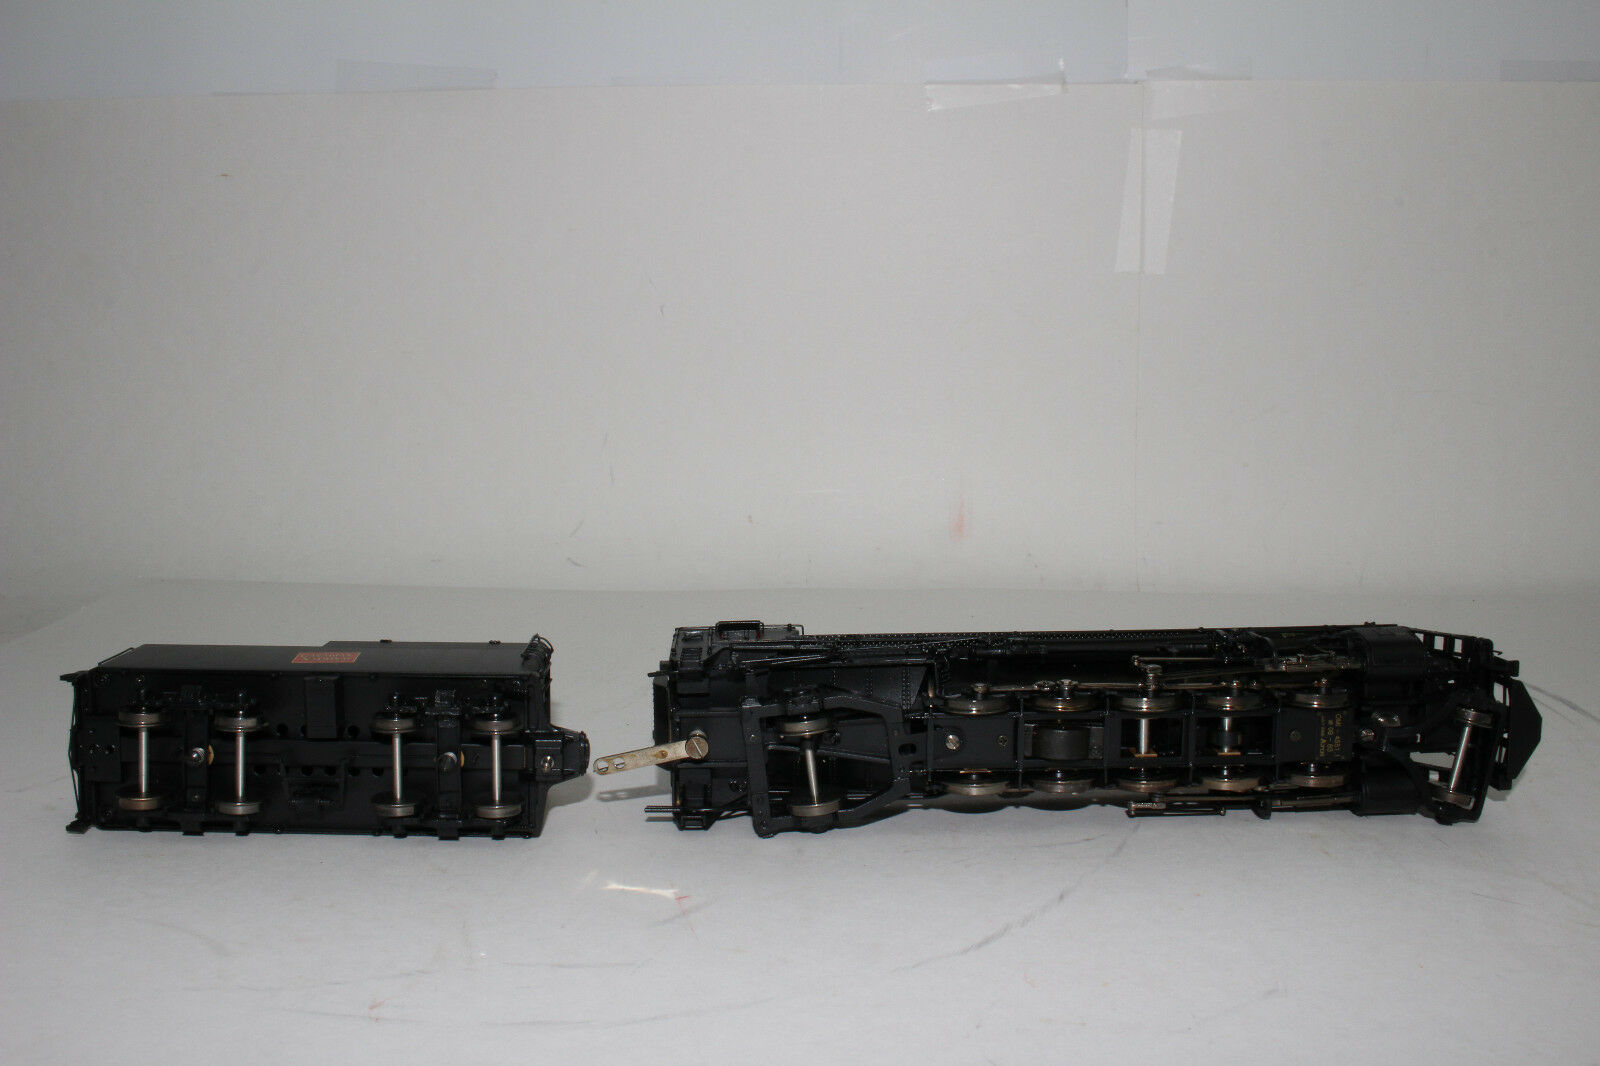 OVERLAND MODELS / AJIN CANADIAN NATIONAL NATIONAL NATIONAL CNR T4B 2-10-2 STEAM LOCOMOTIVE ENGINE f3bcd3